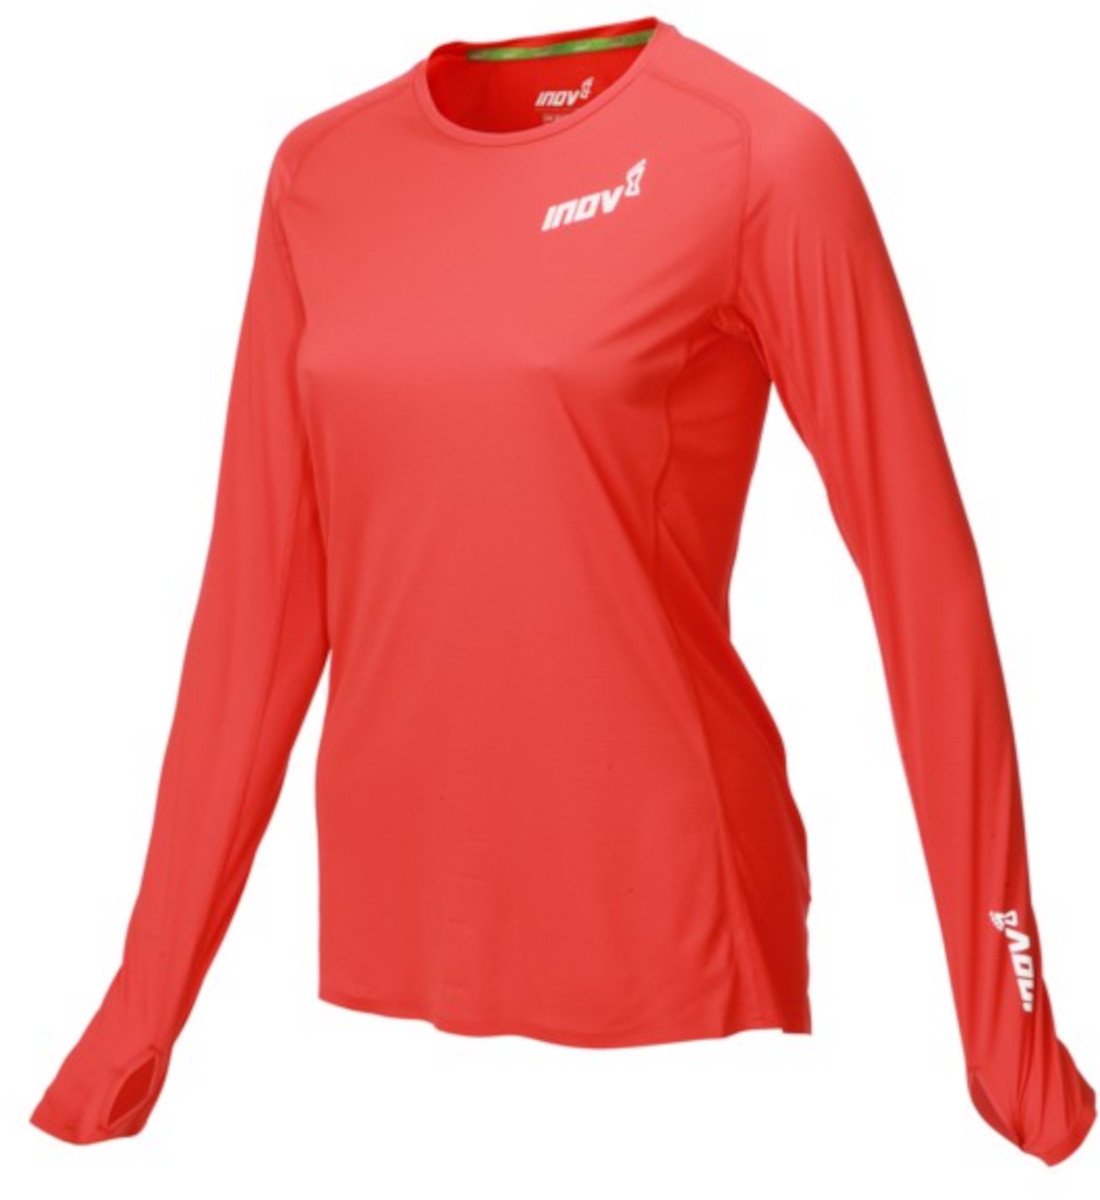 Camiseta de manga larga INOV-8 INOV-8 BASE ELITE LS W T-shirt